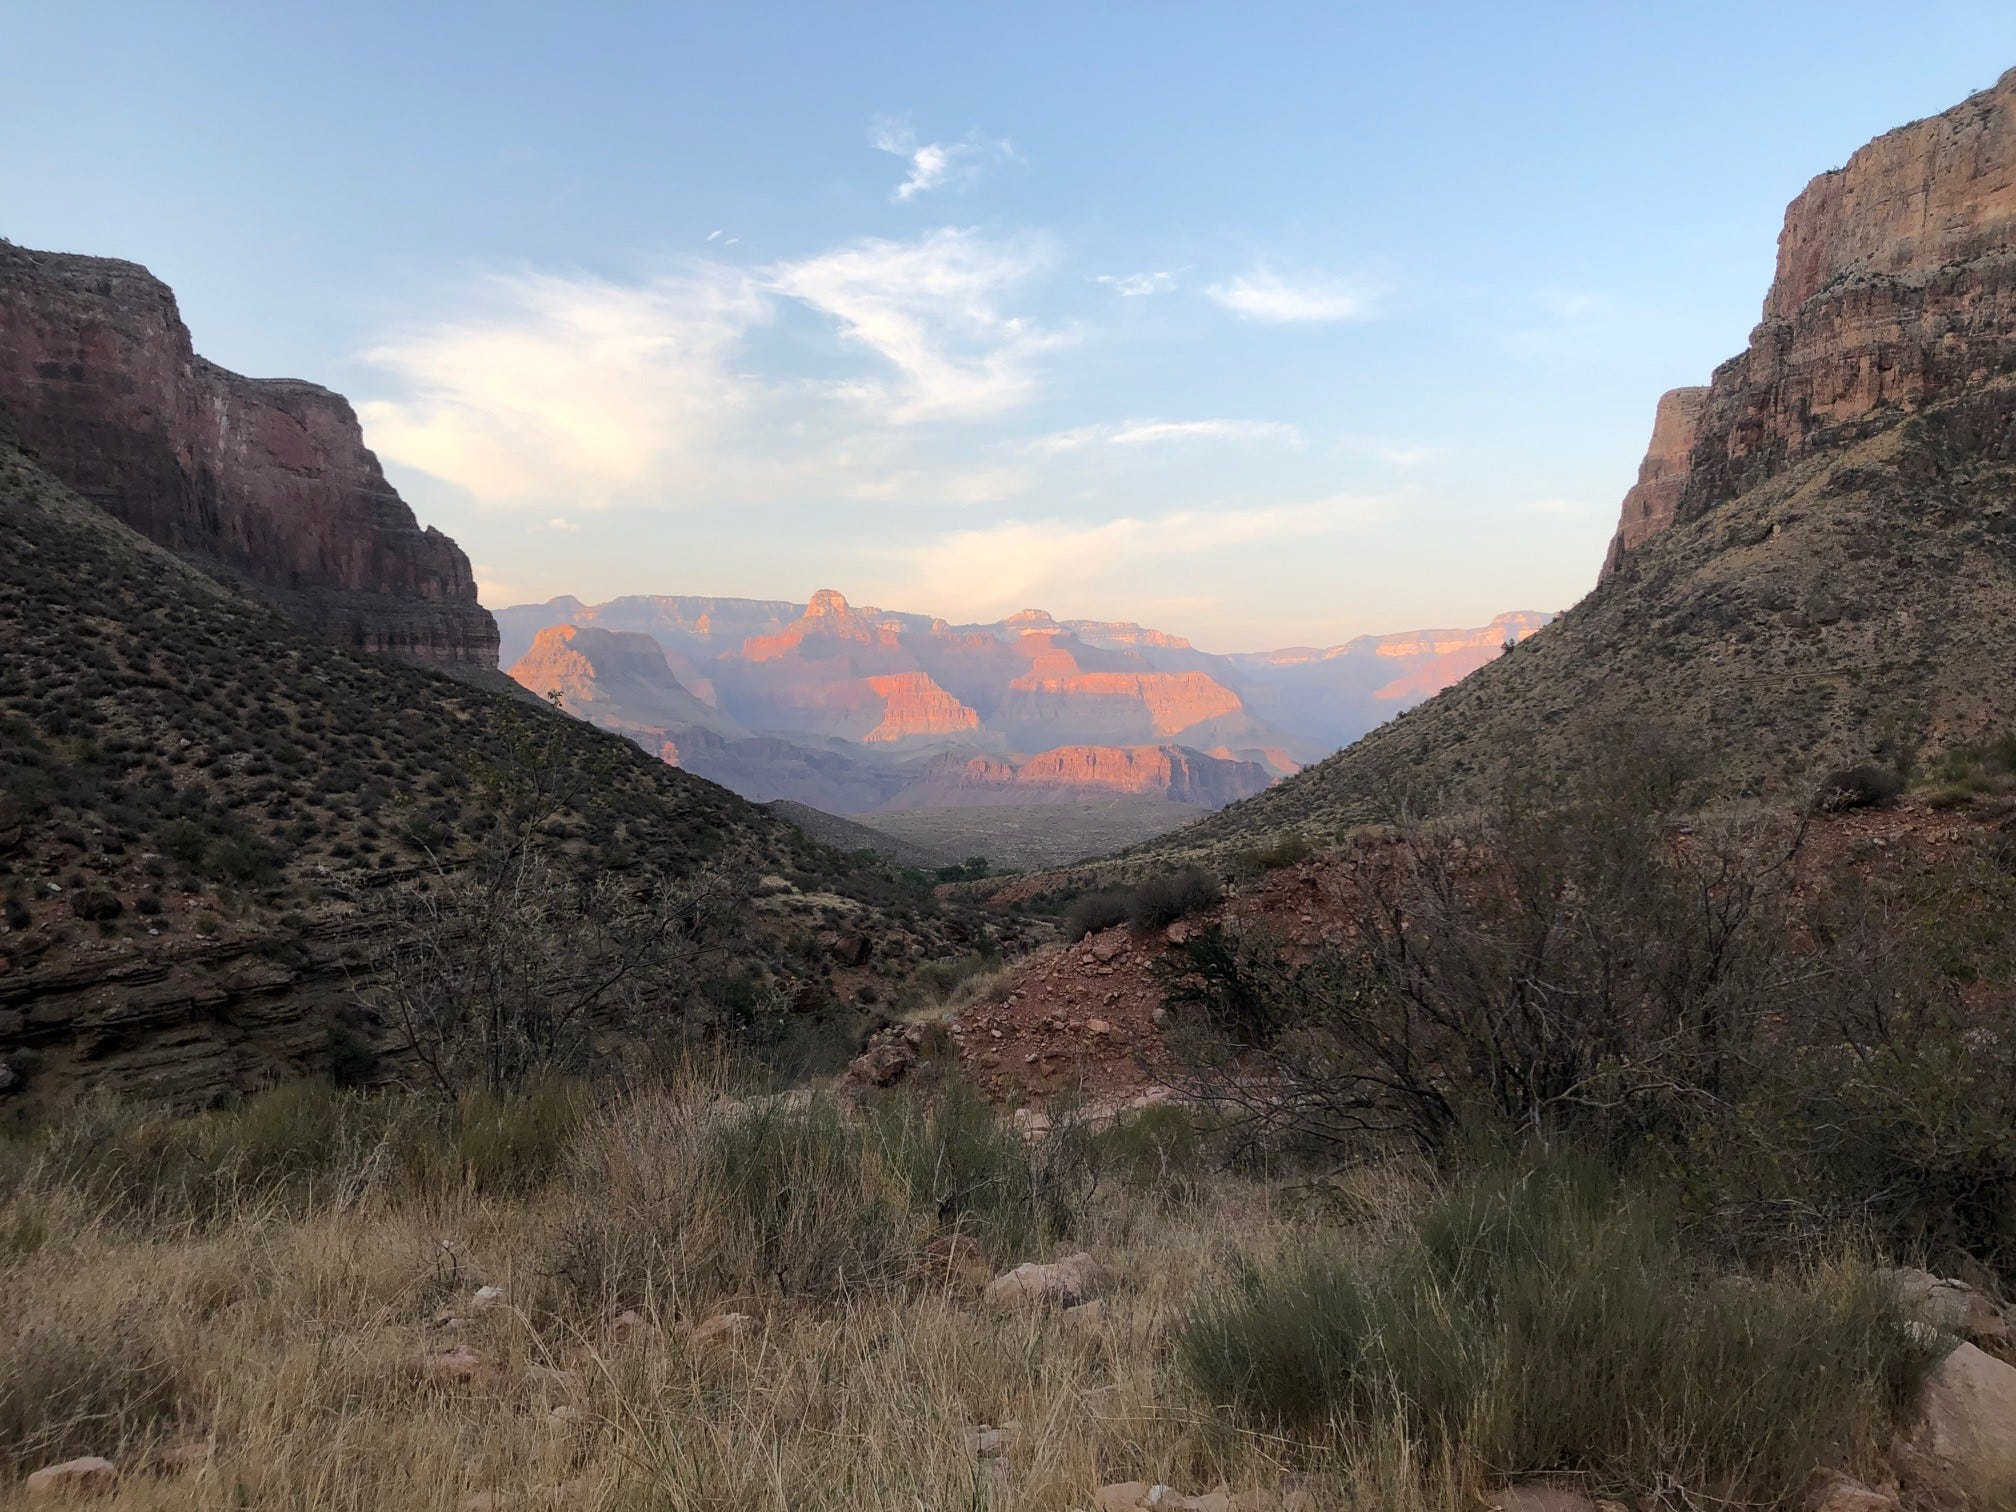 Looking for a grand escape? I hiked Grand Canyon rim to rim. Here's what it's like